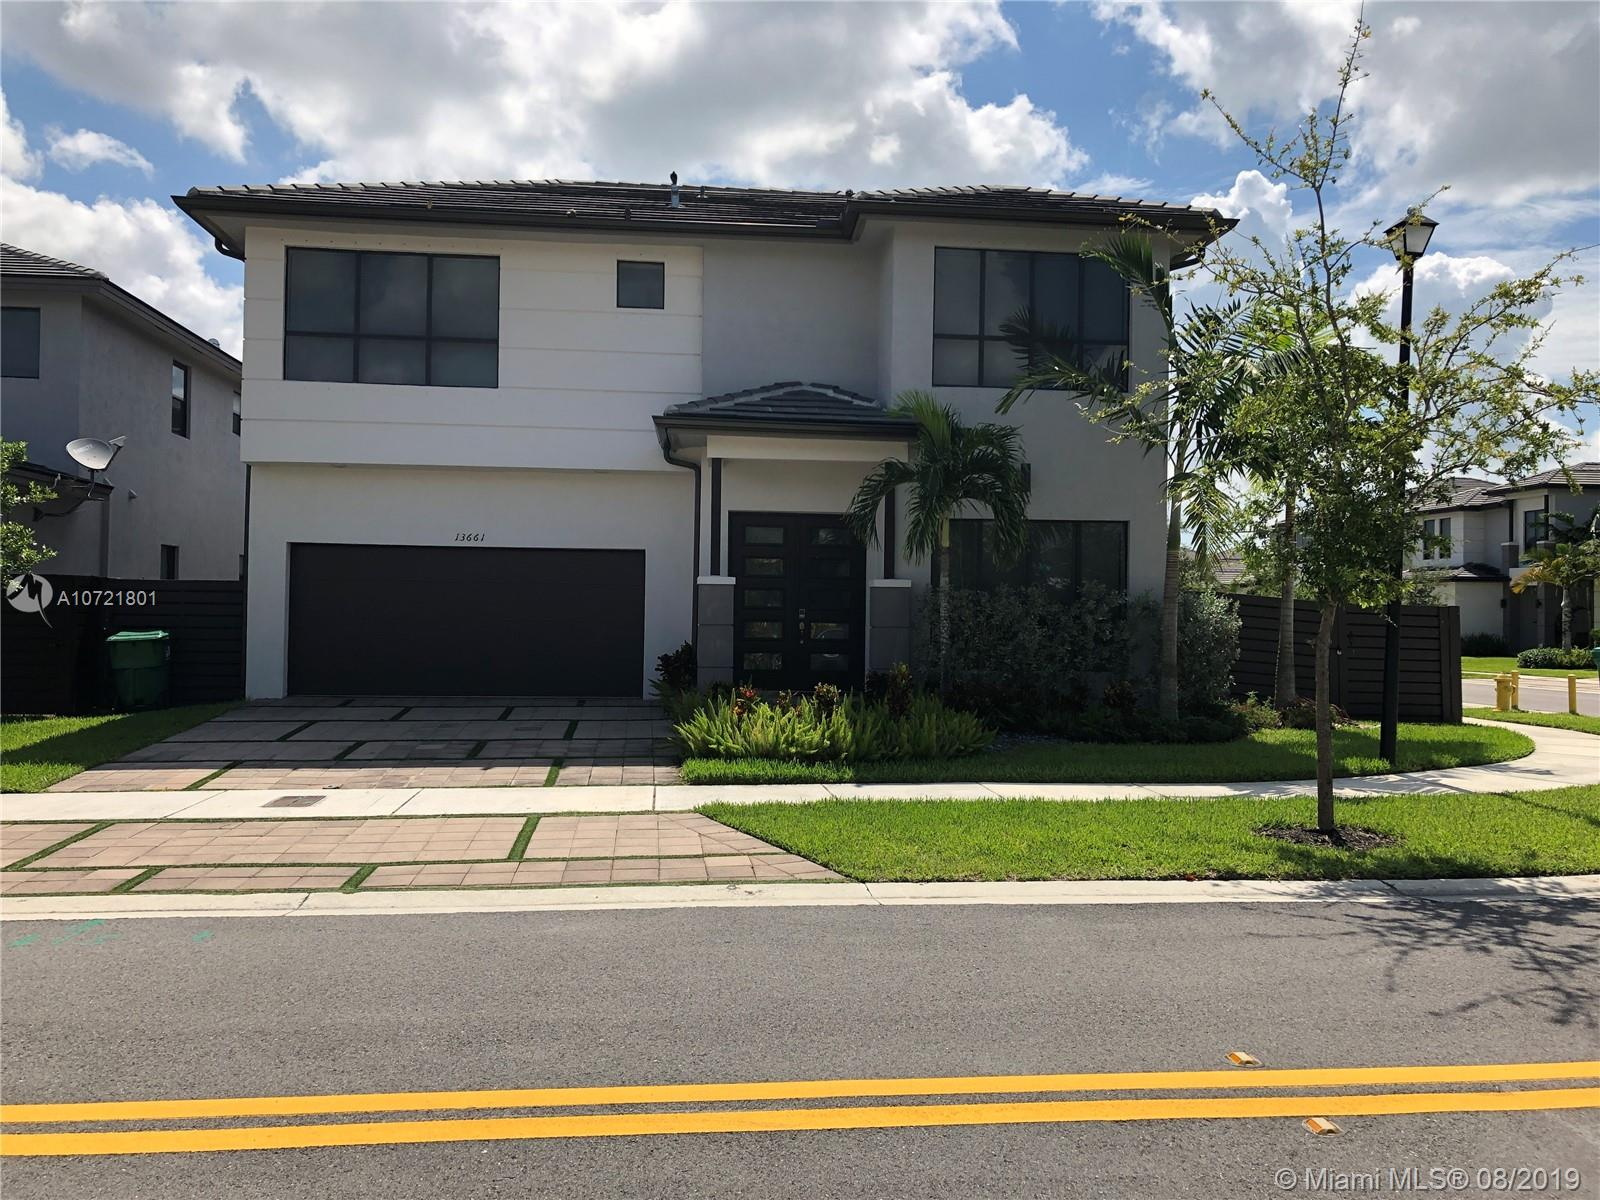 13661 SW 160th ct, Kendall, Florida